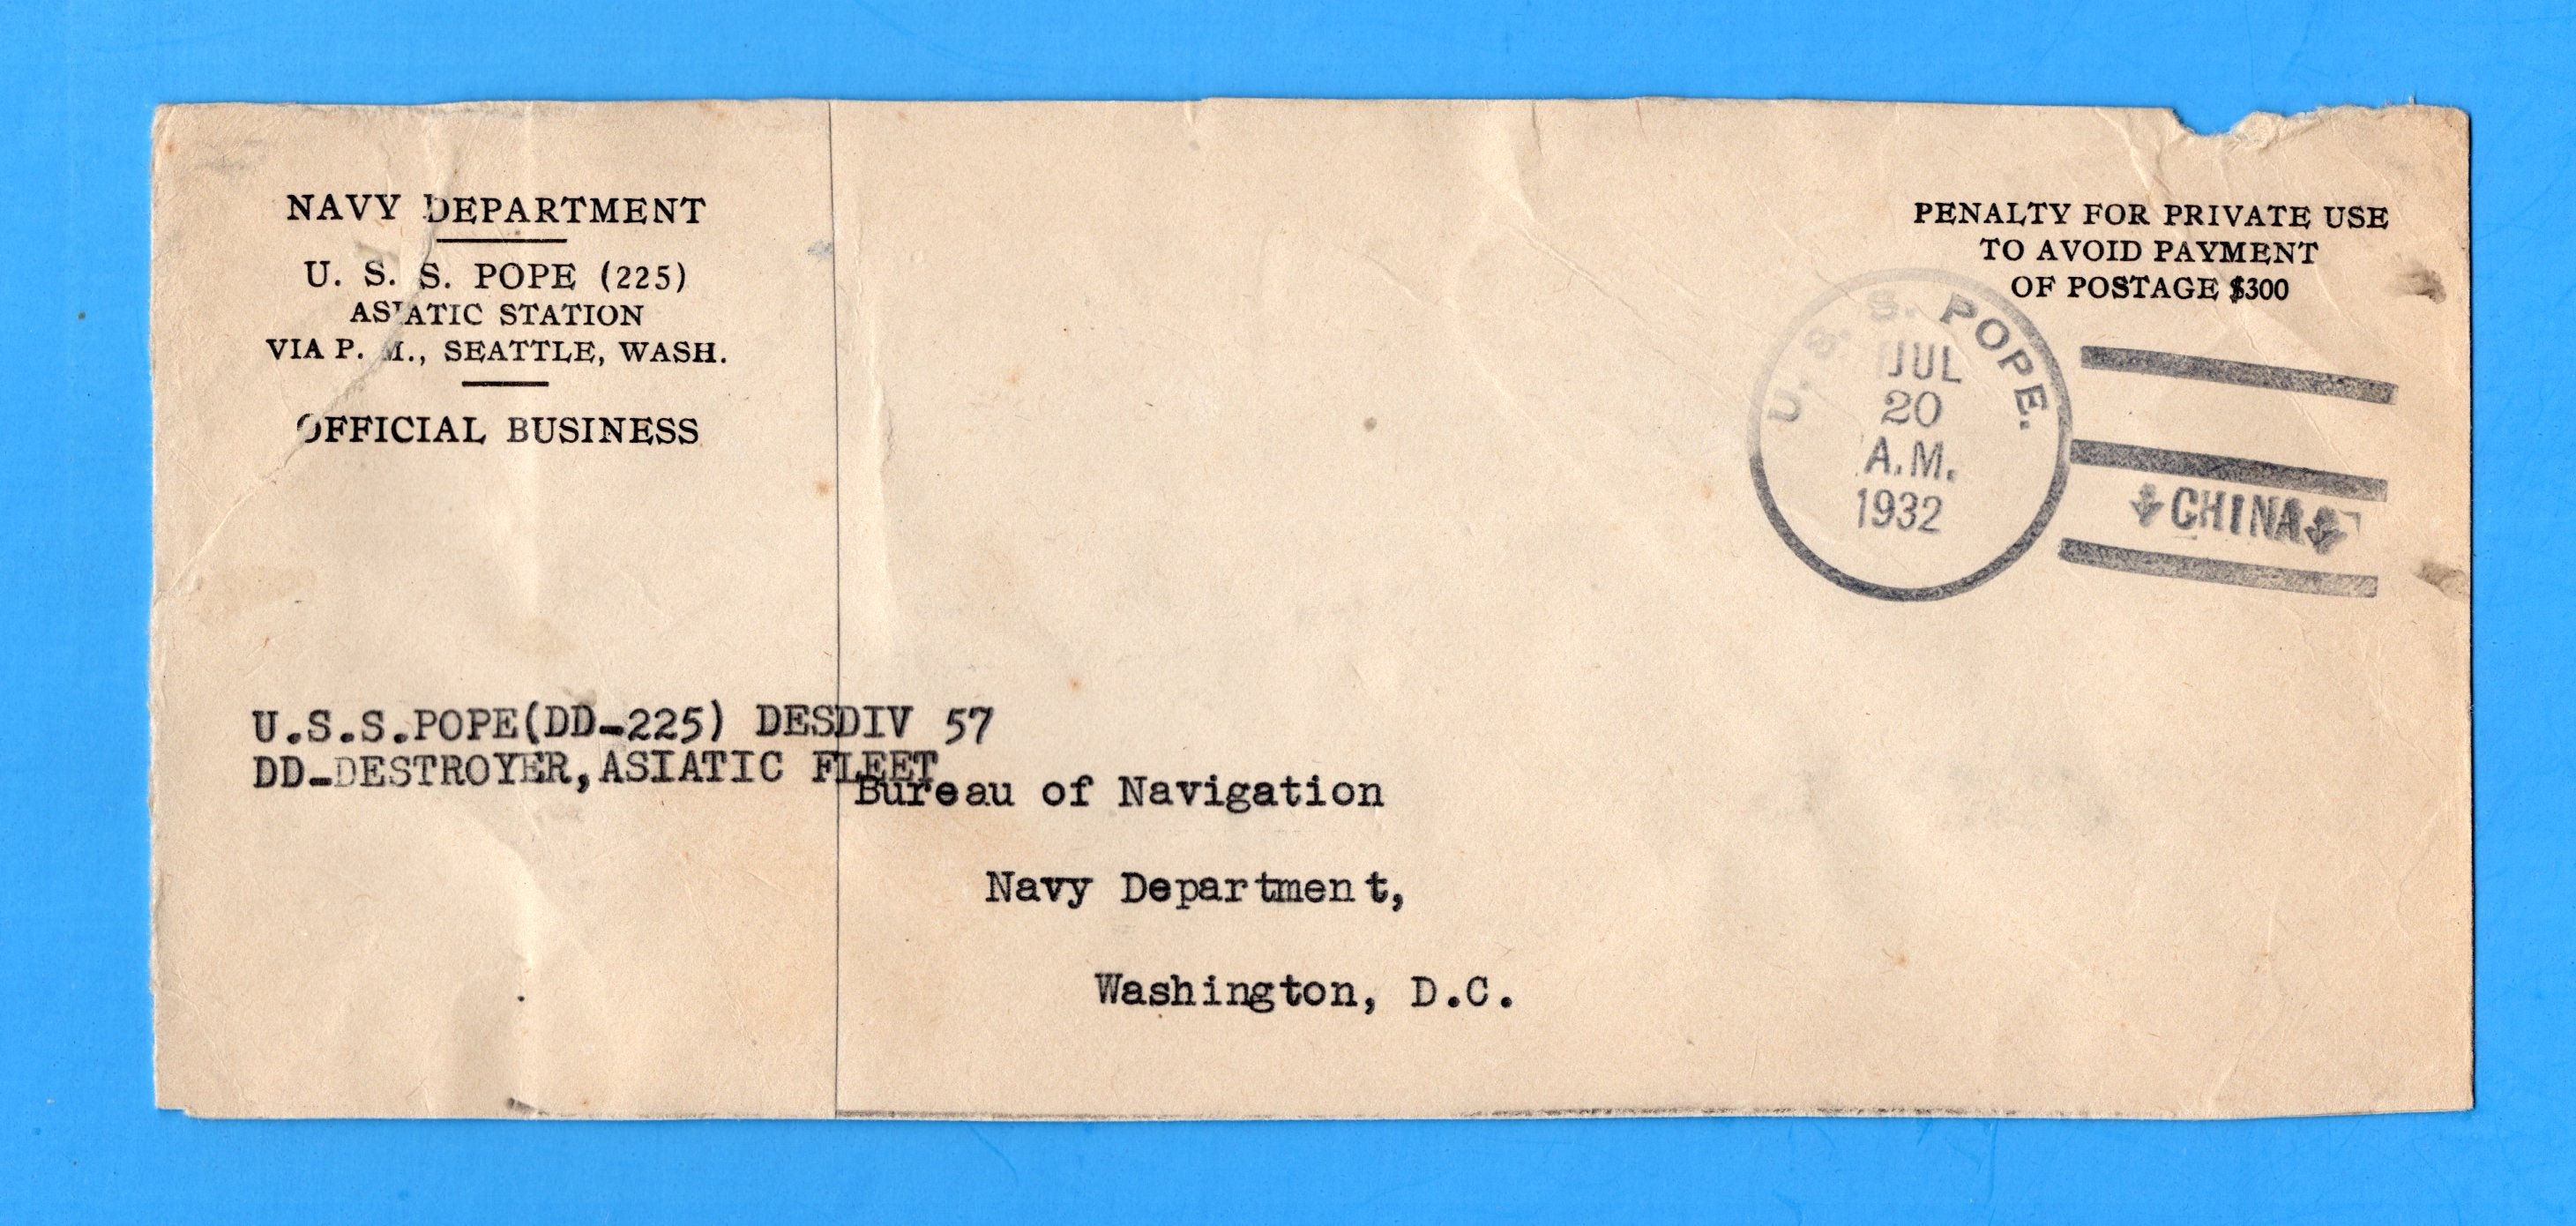 USS Pope DD-225 Navy Department Official Mail Asiatic Station China July 20, 1932 - Look Closely at Condition